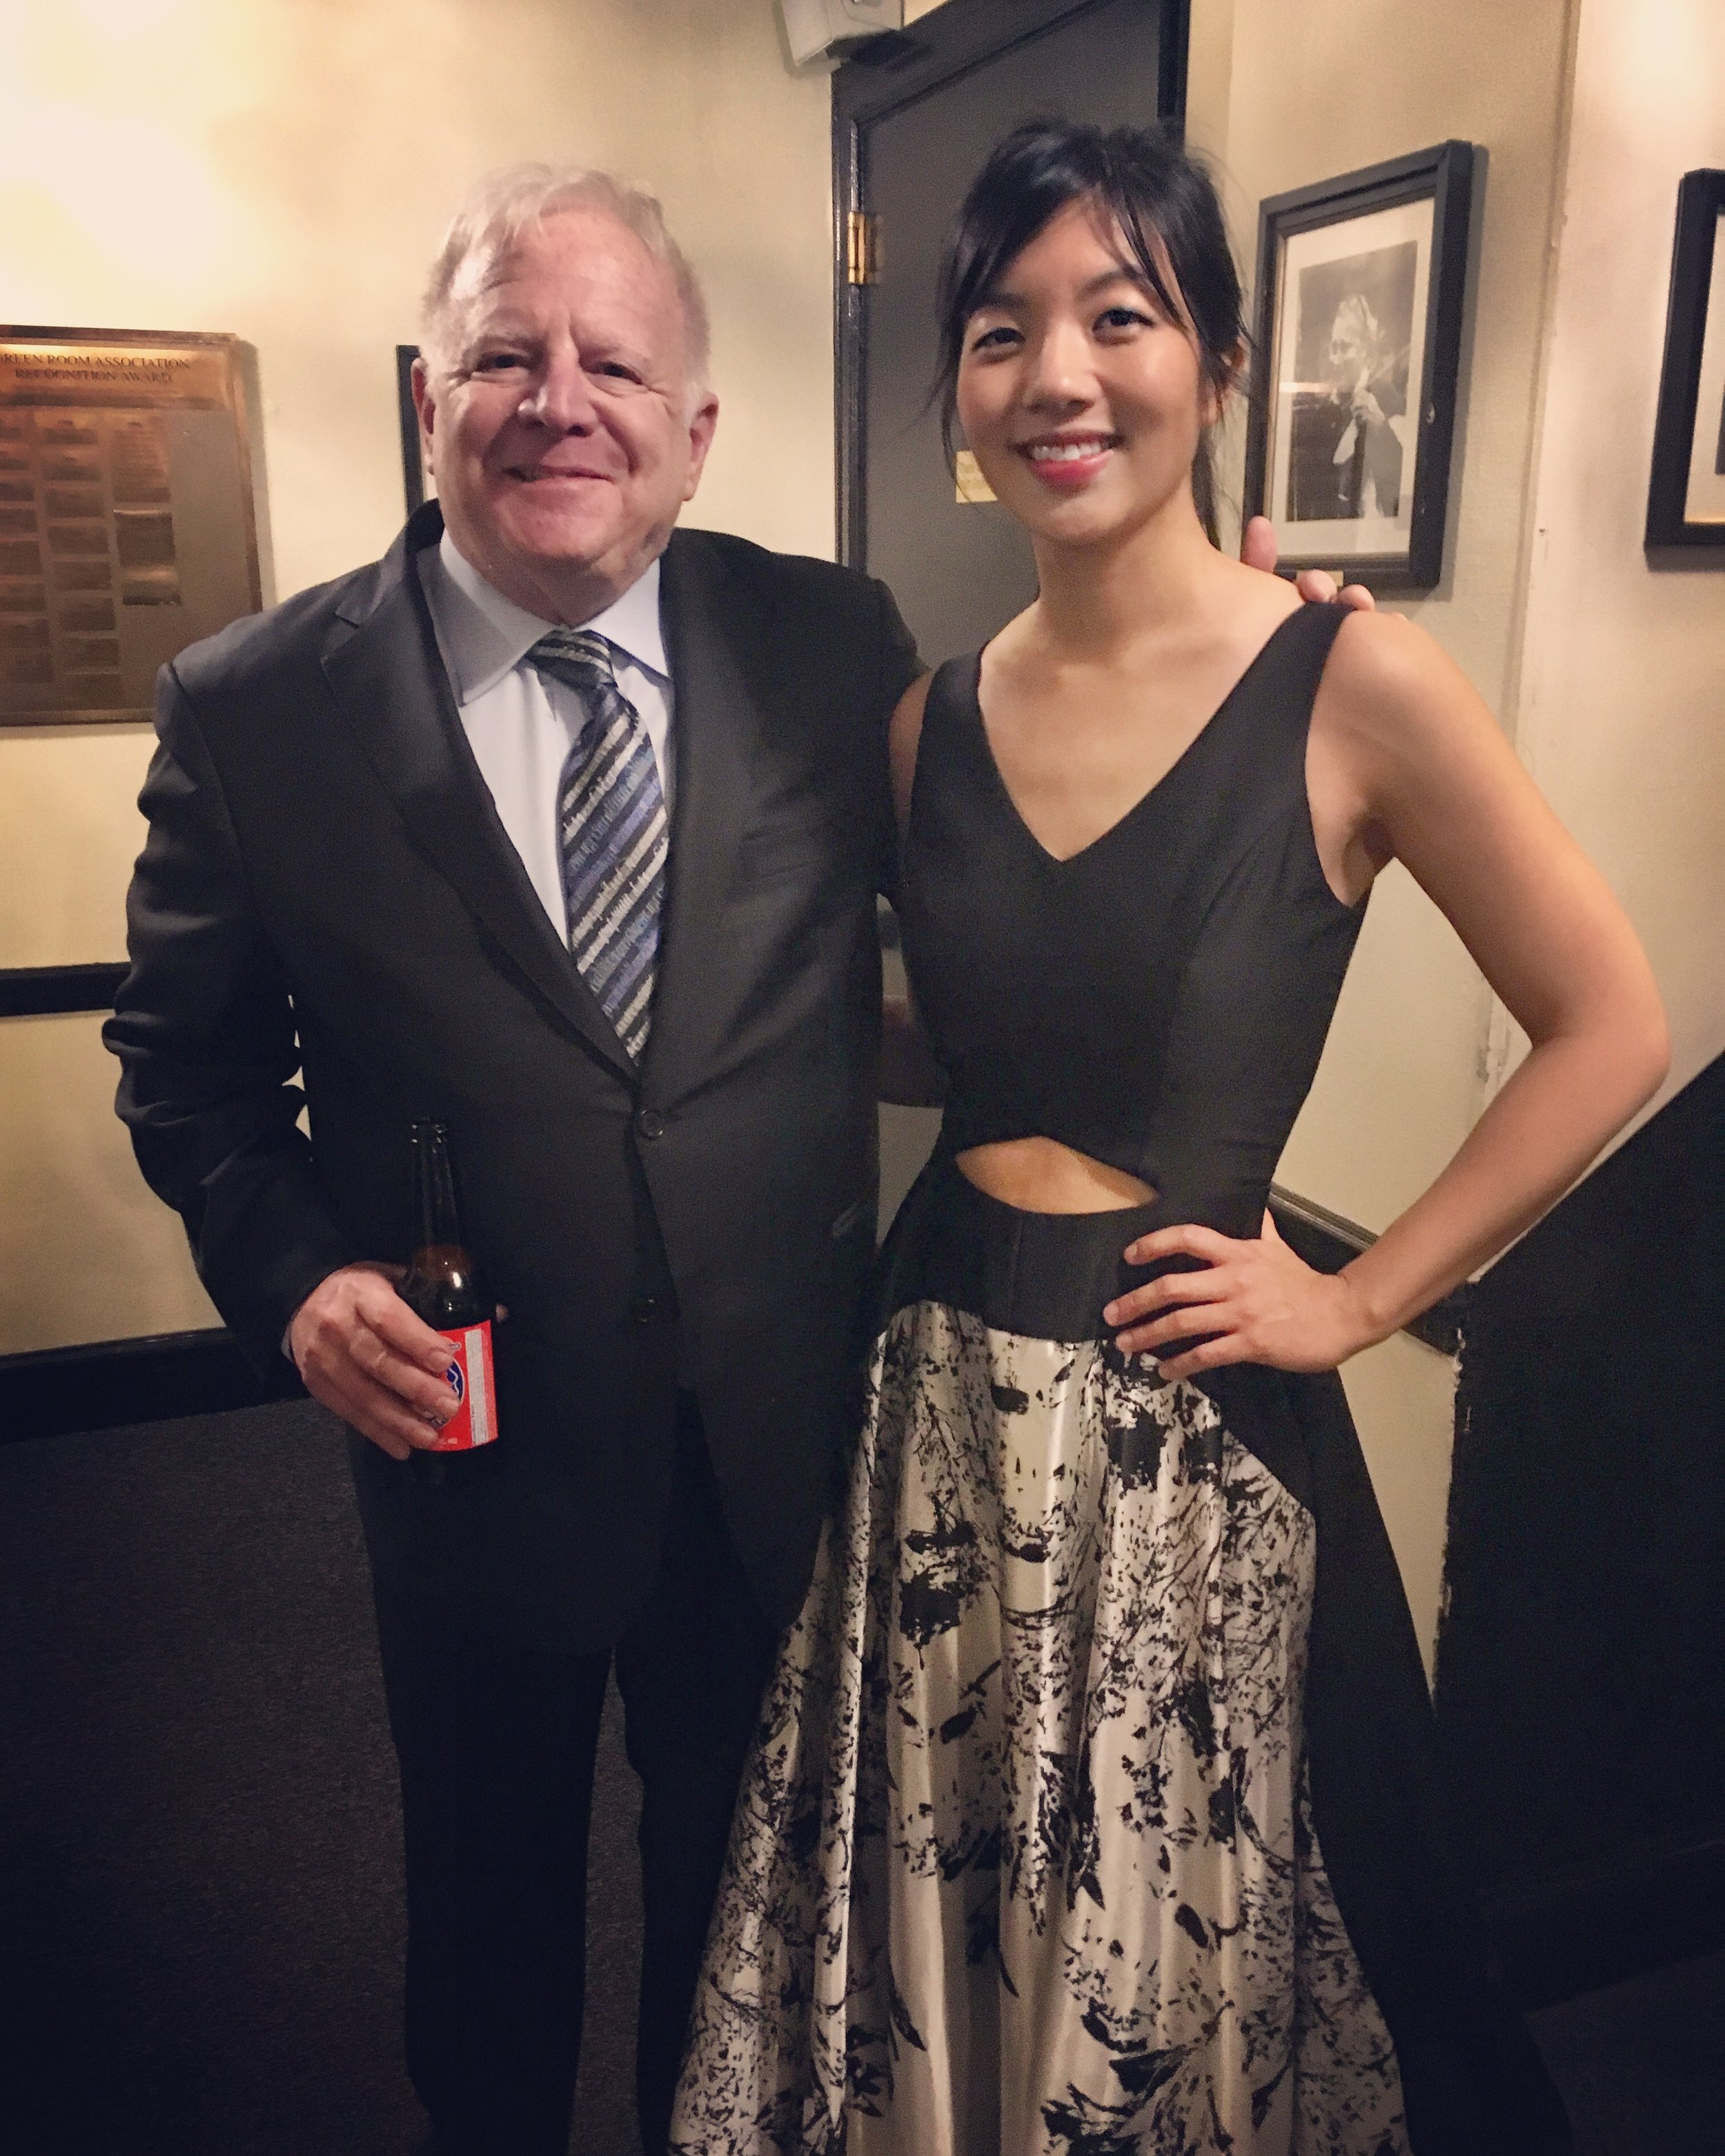 Legendary conductor Leonard Slatkin & pianist Elizabeth Joy Roe backstage at Powell Hall